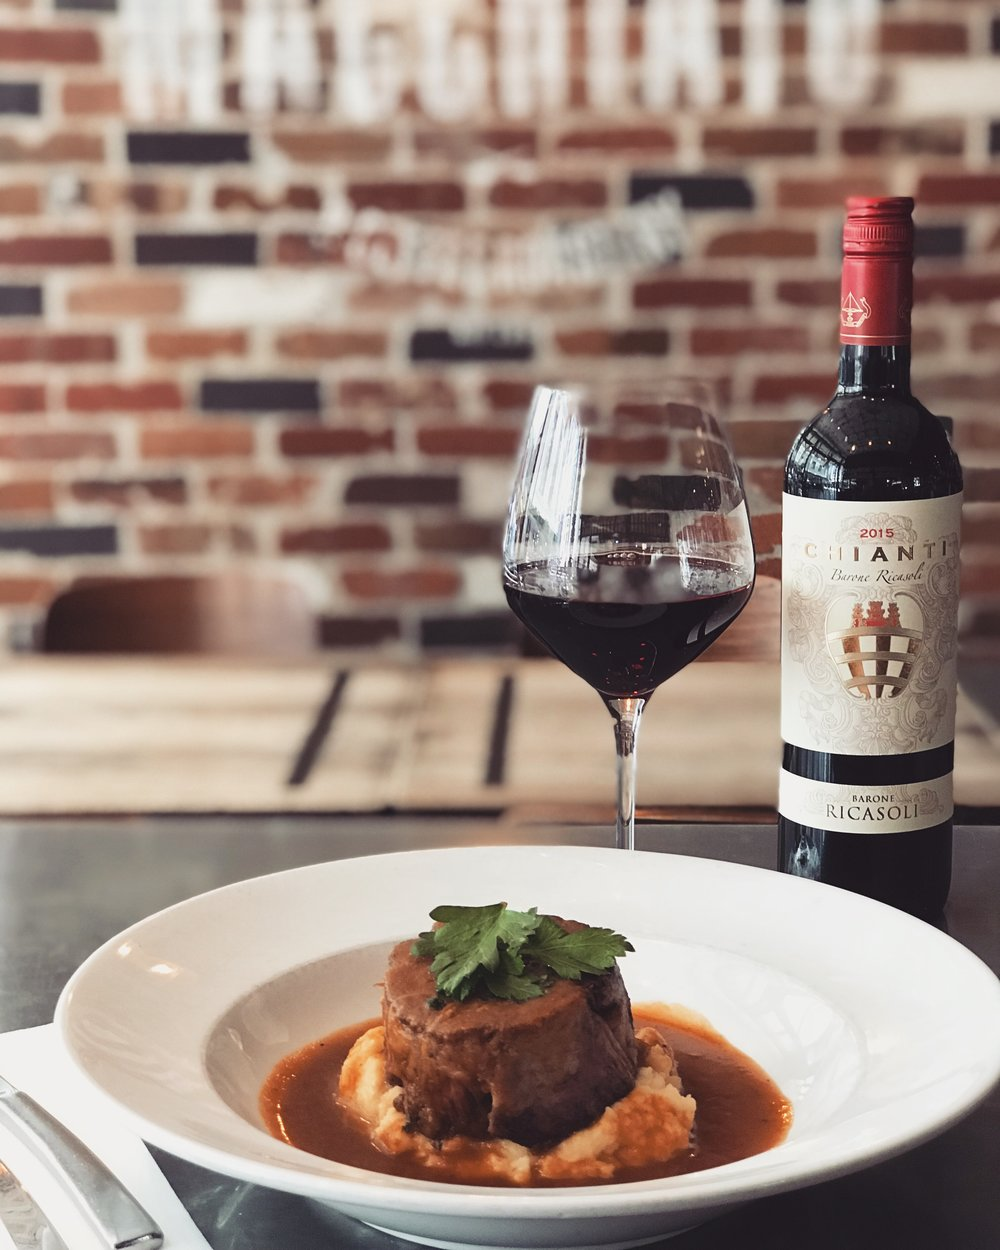 13-19 December - Slow cooked shoulder of Junee Spring lamb served with smashed potatoes and red wine & rosemary jus.Accompanied with a rich glass of our 'Barone Ricasoli' Chianti, from Siena, Italy.